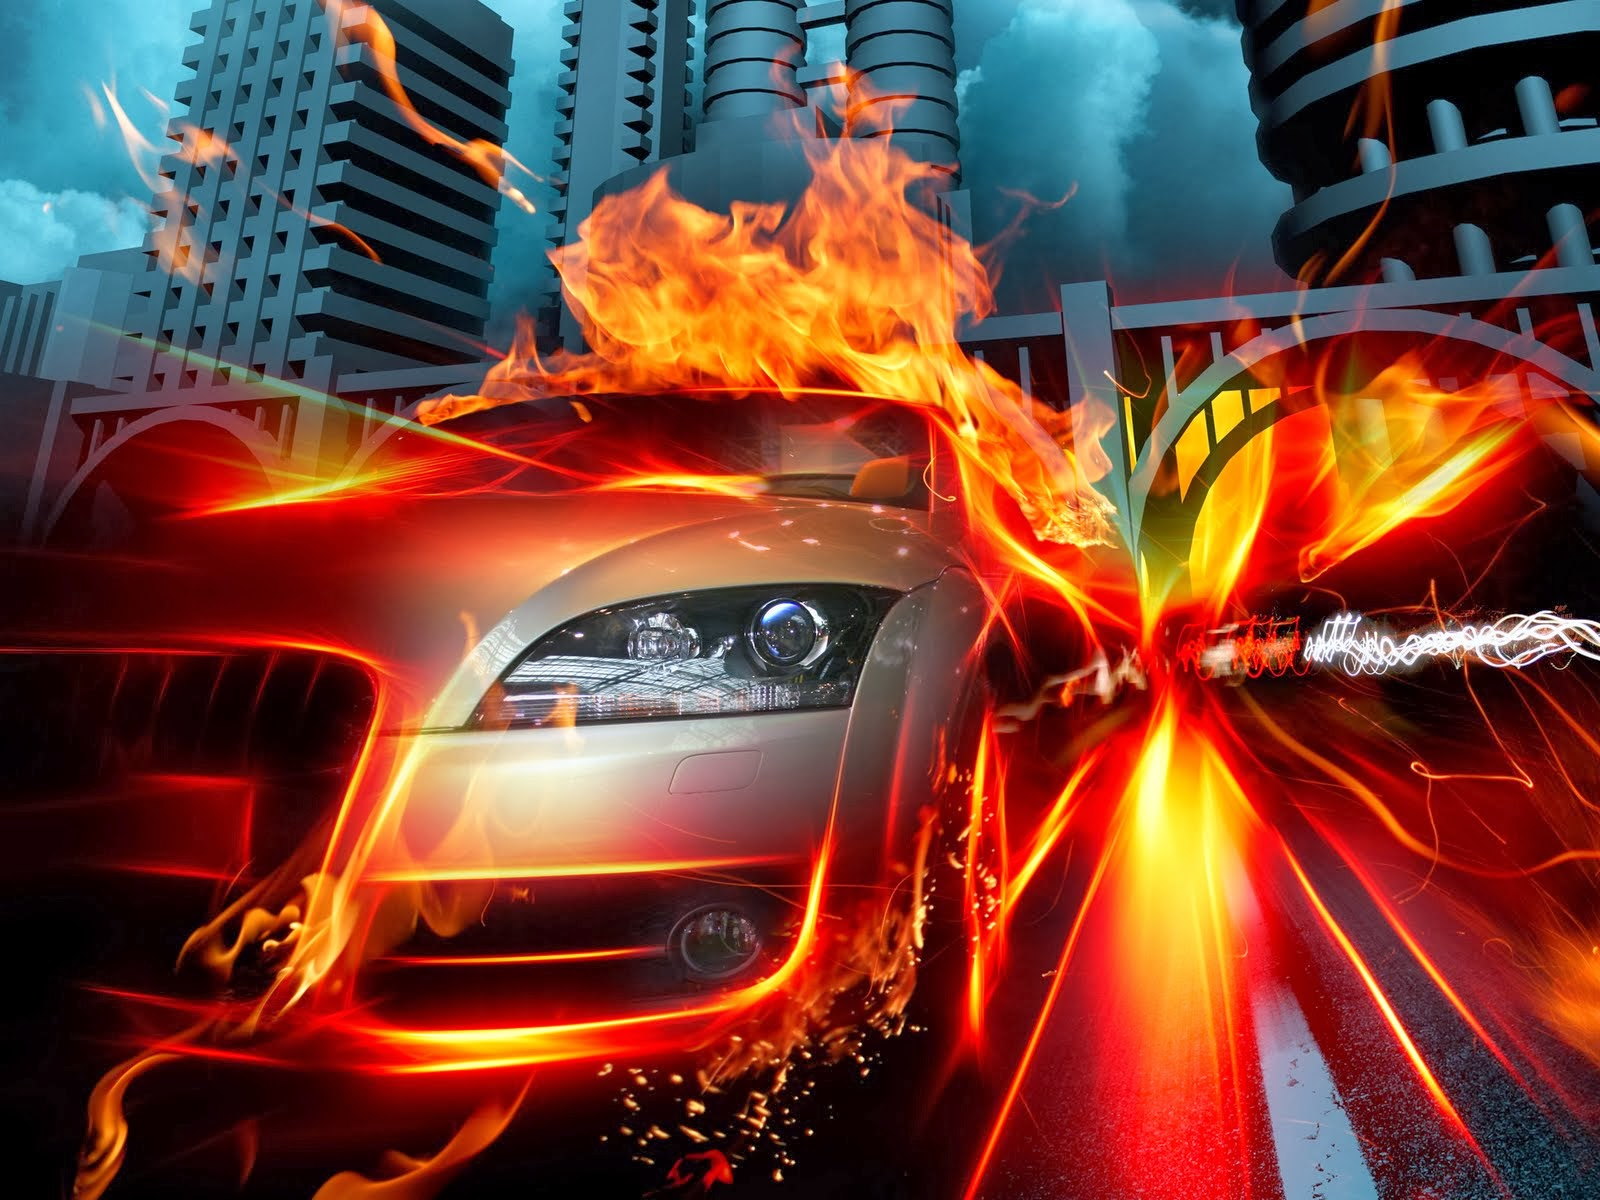 Cars View: cars hd fire